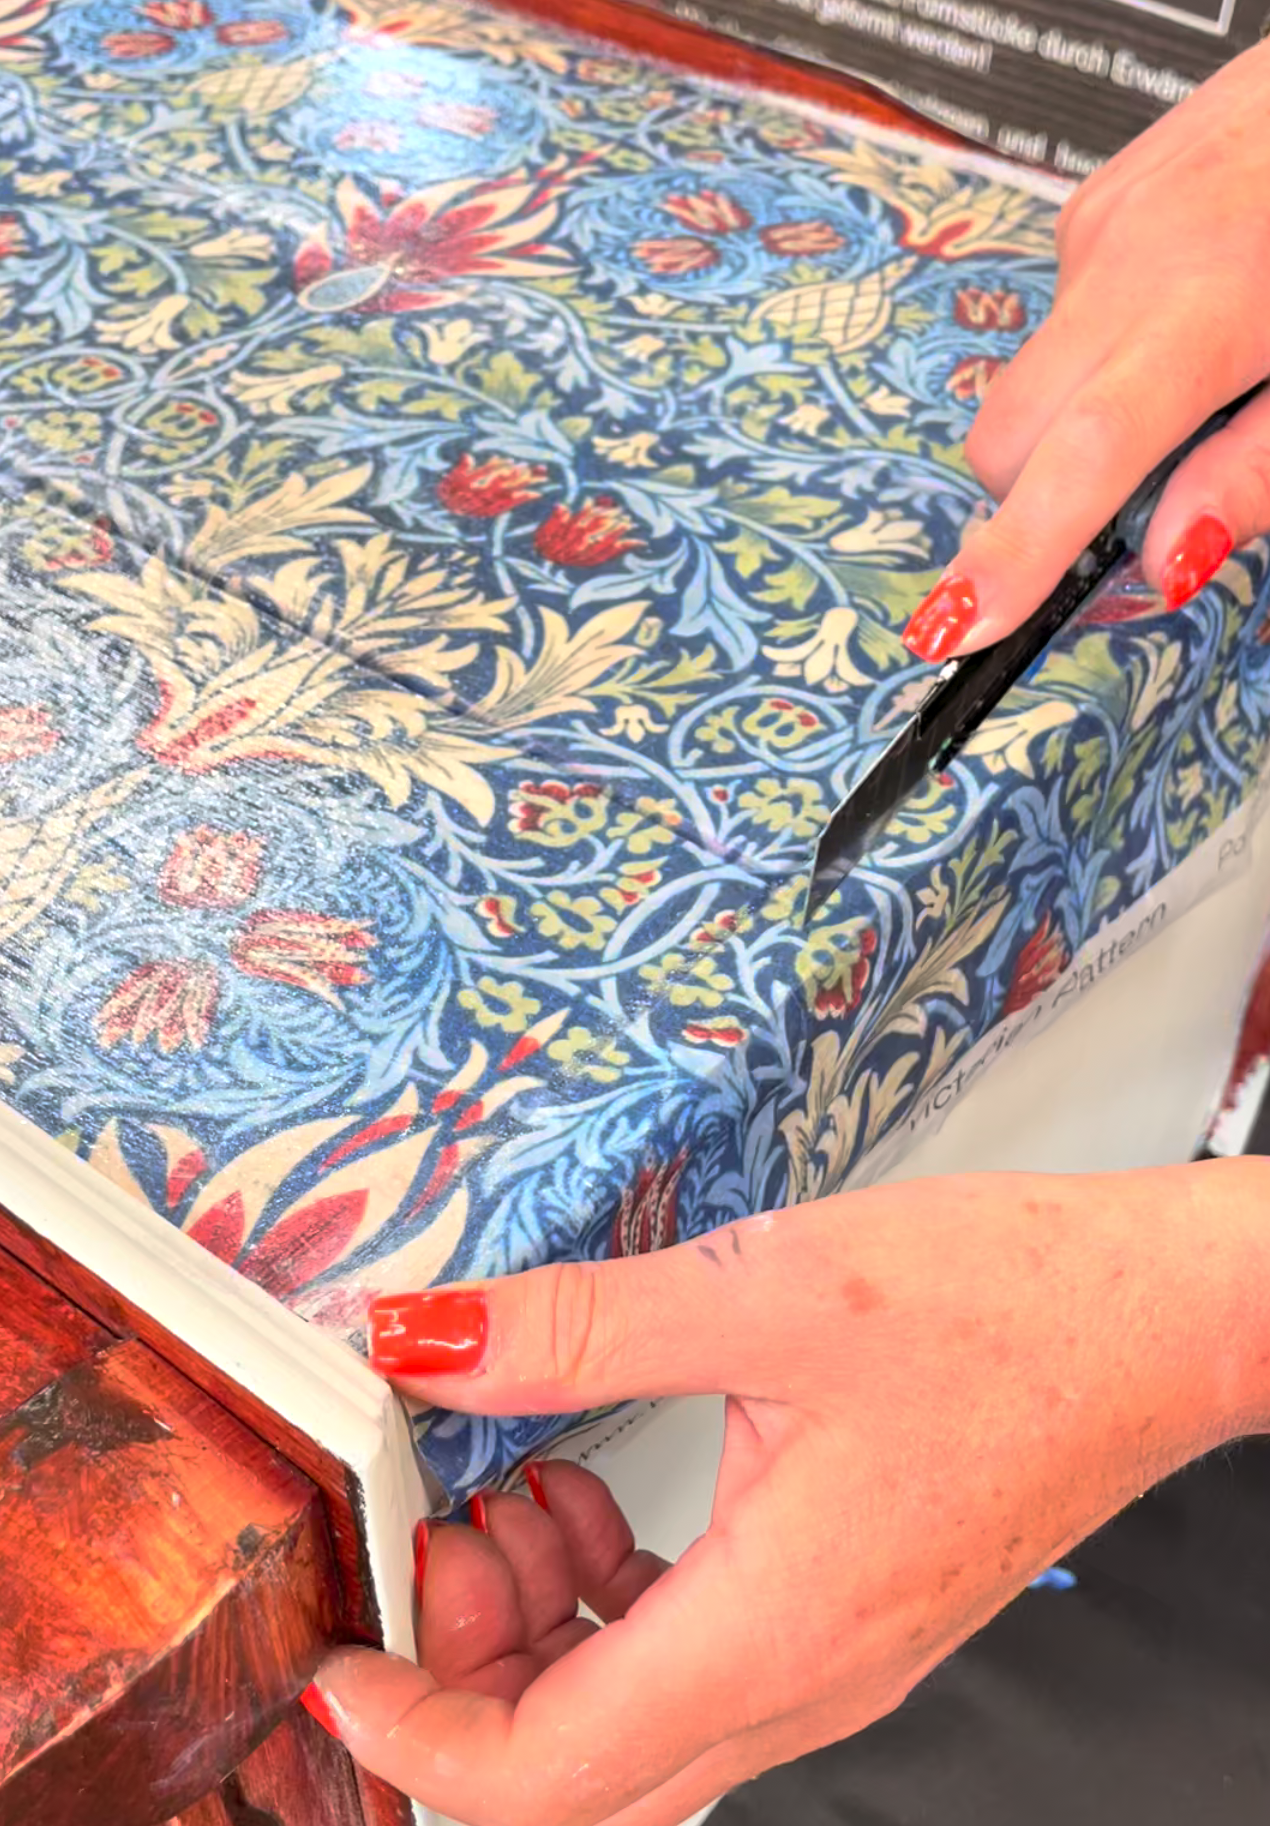 Posh Chalk Deluxe Decoupage being sliced with a craft knife